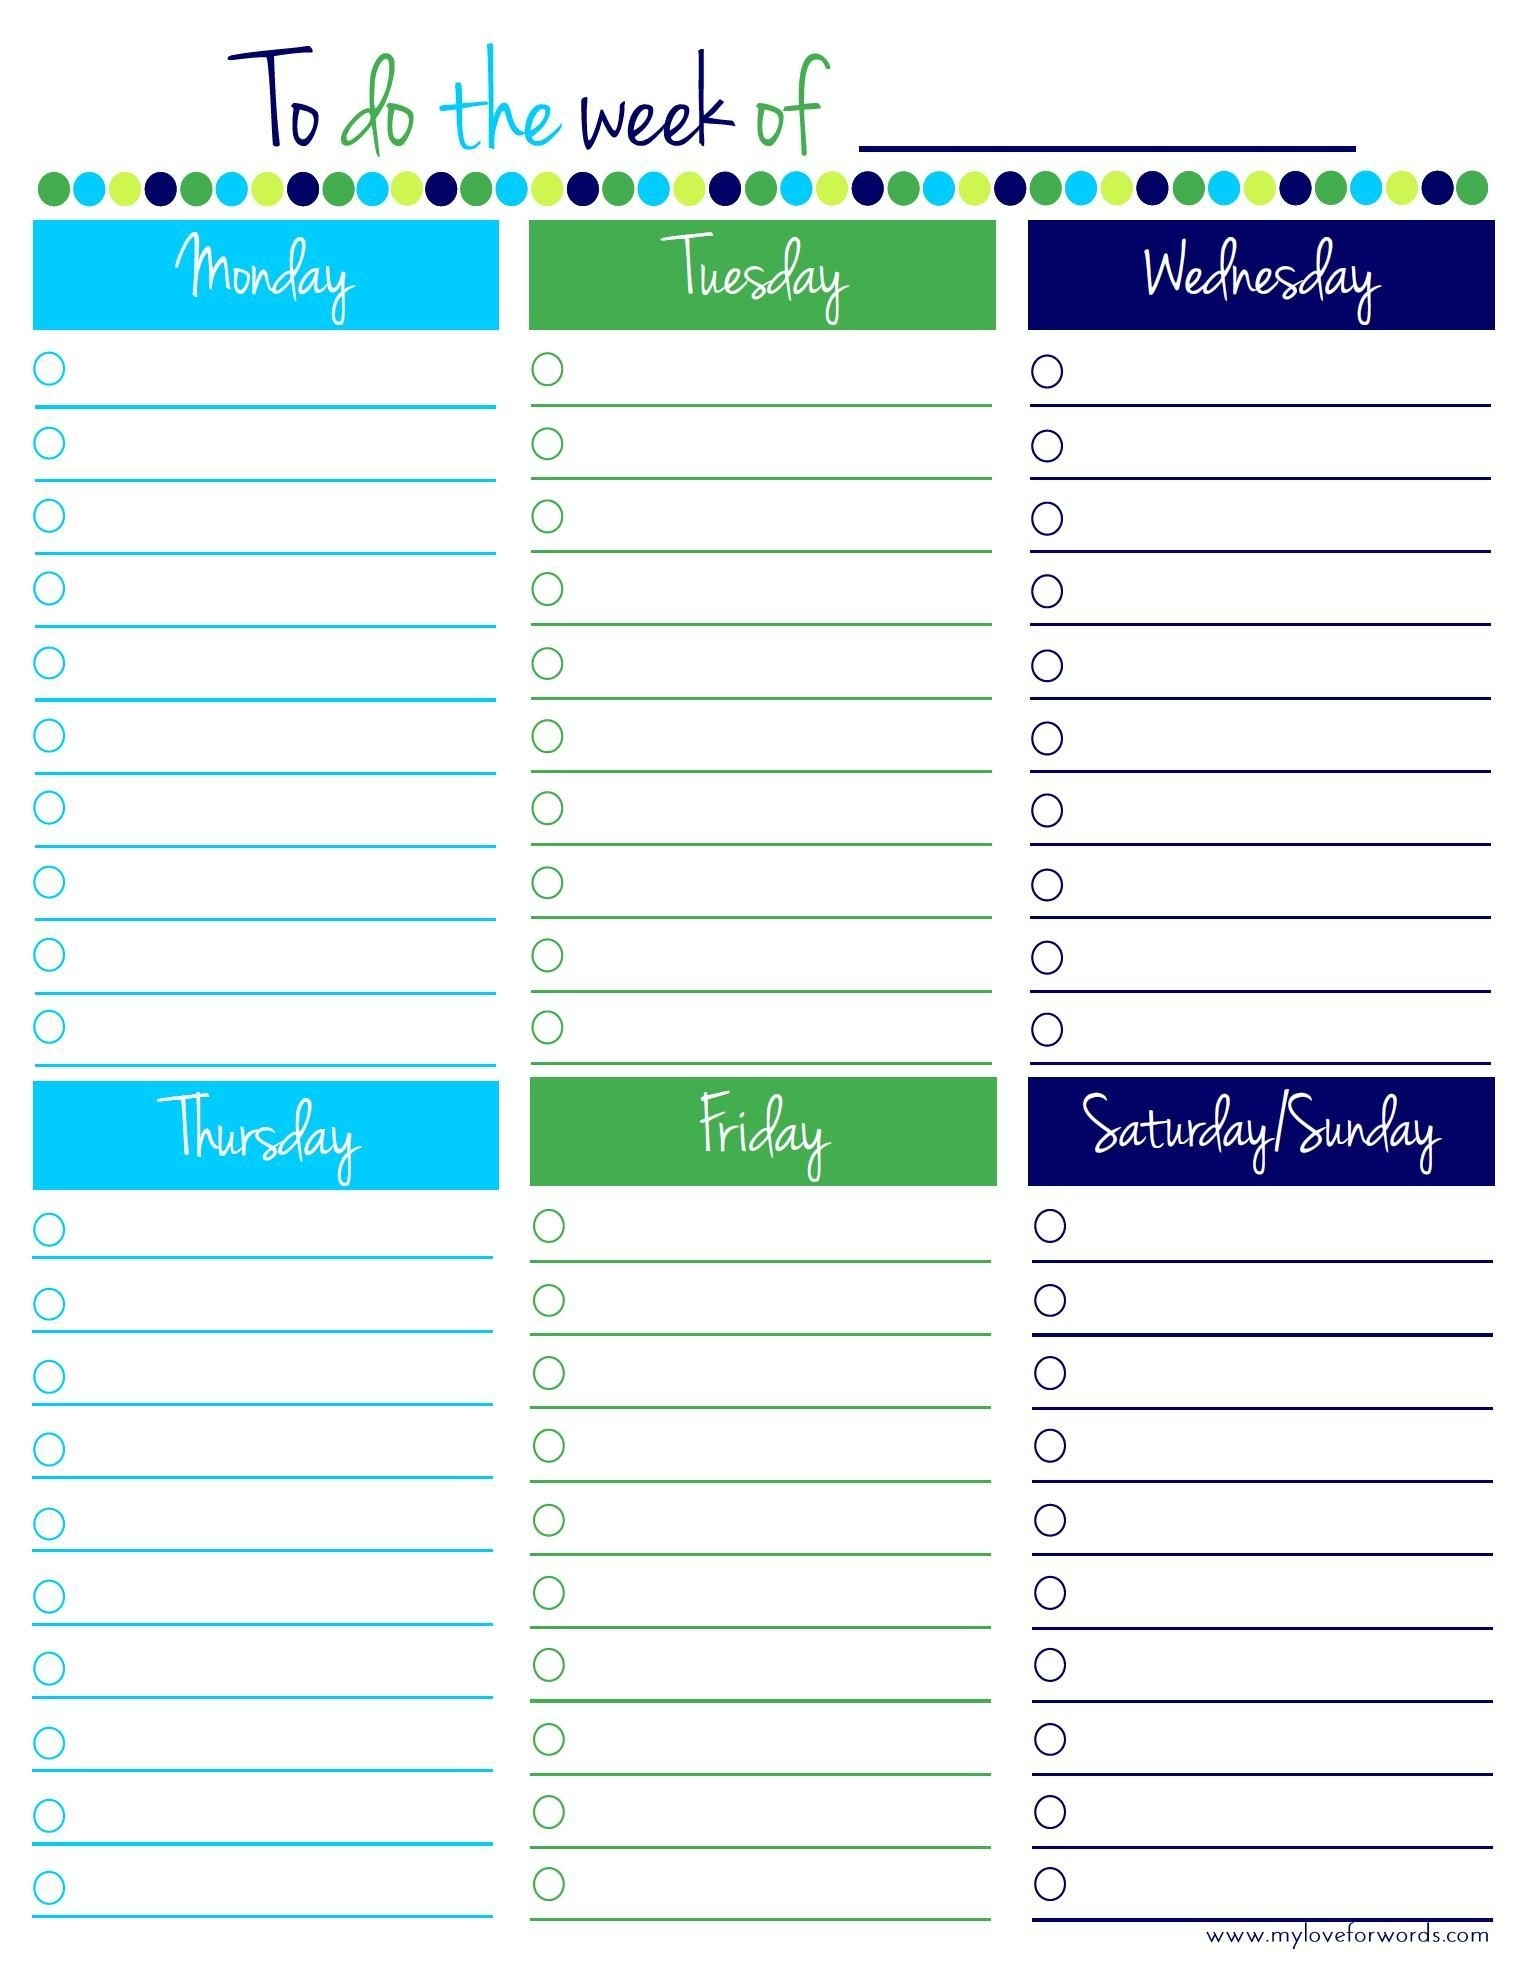 Freebie Friday: Weekly To Do List | Pinterest | Daily Printable  Monday To Friday Weekly Planner